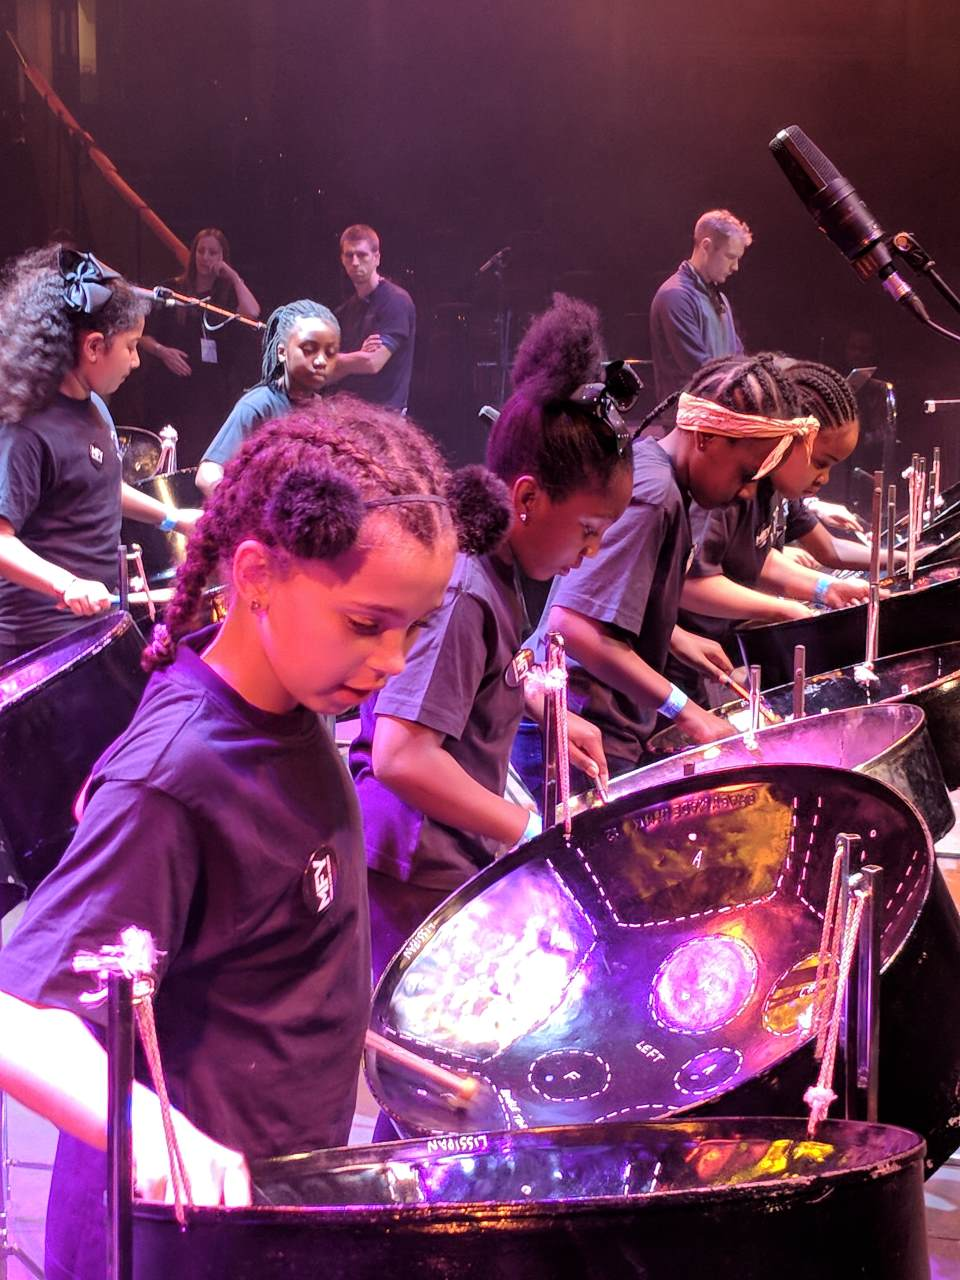 St. Anns - rehearsals at the Royal Albert Hall